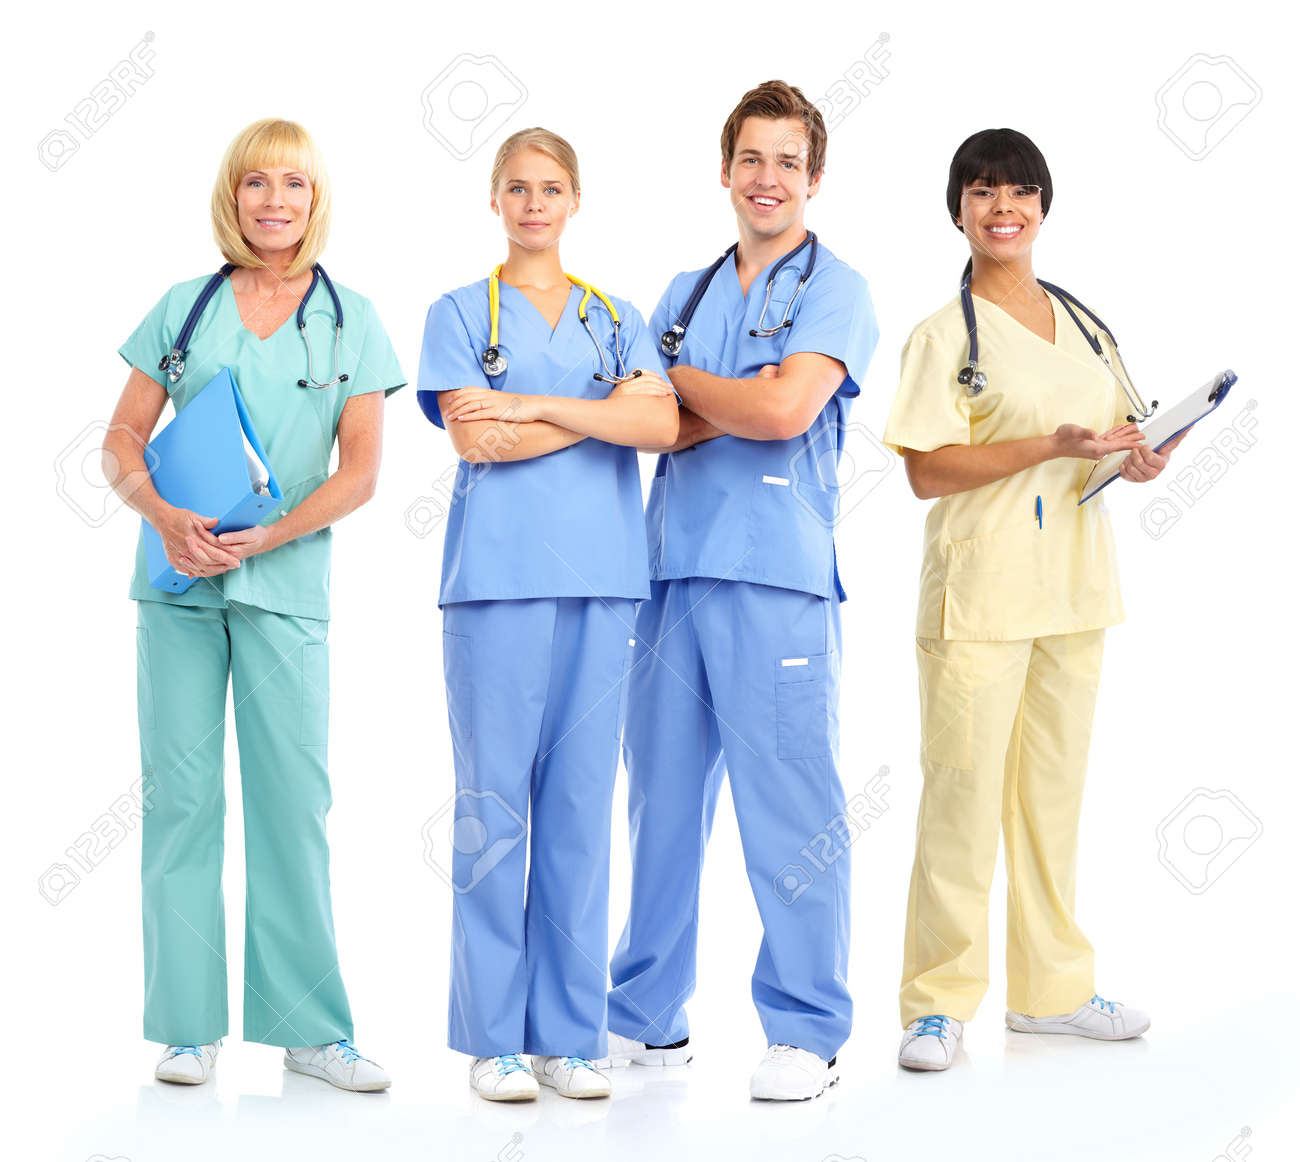 Smiling medical doctors with stethoscopes. Isolated over white background Stock Photo - 8459540